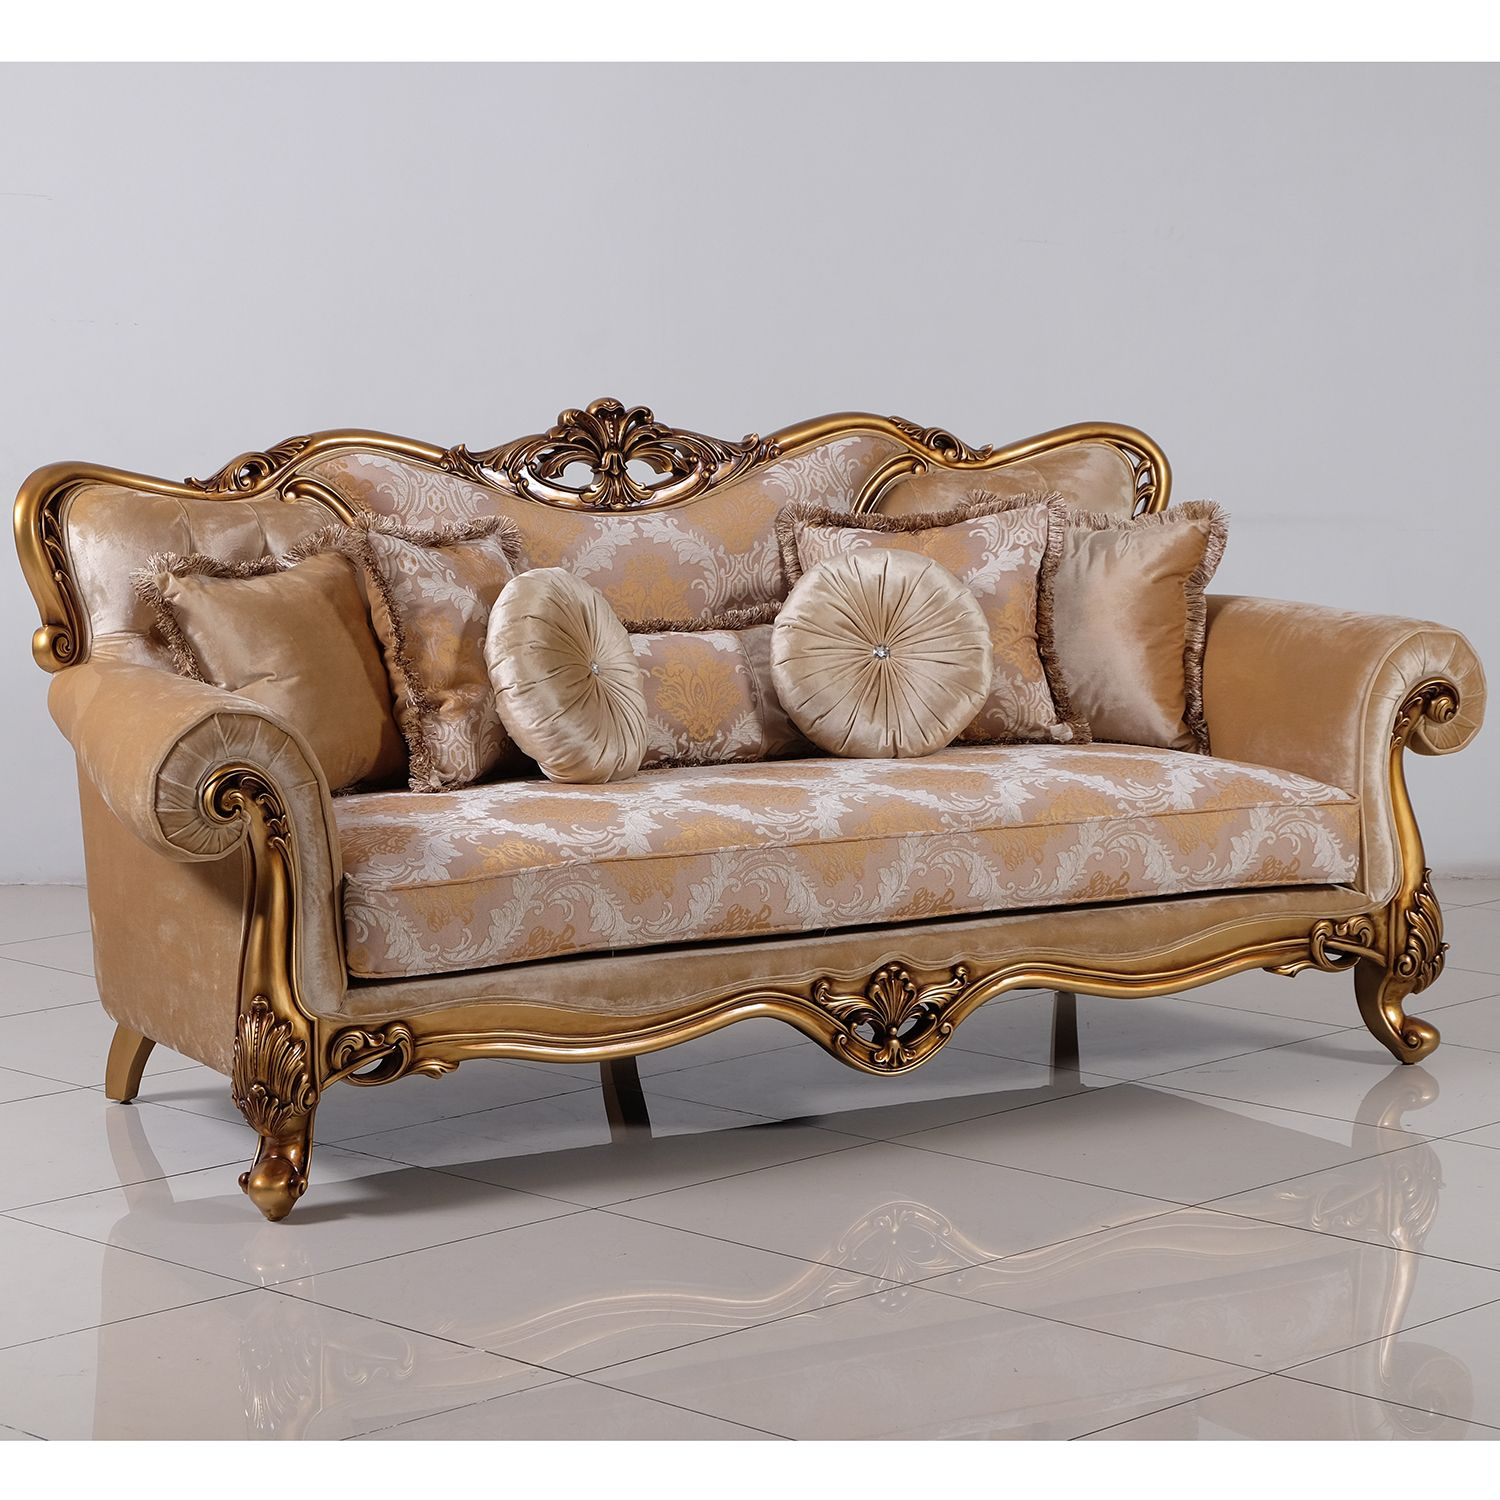 Grand European Luxury Furniture 4798 S Cleopatra Sofa Fabric Carved Golden Finish Mahogany Luxury Furniture Furniture Luxury Sofa